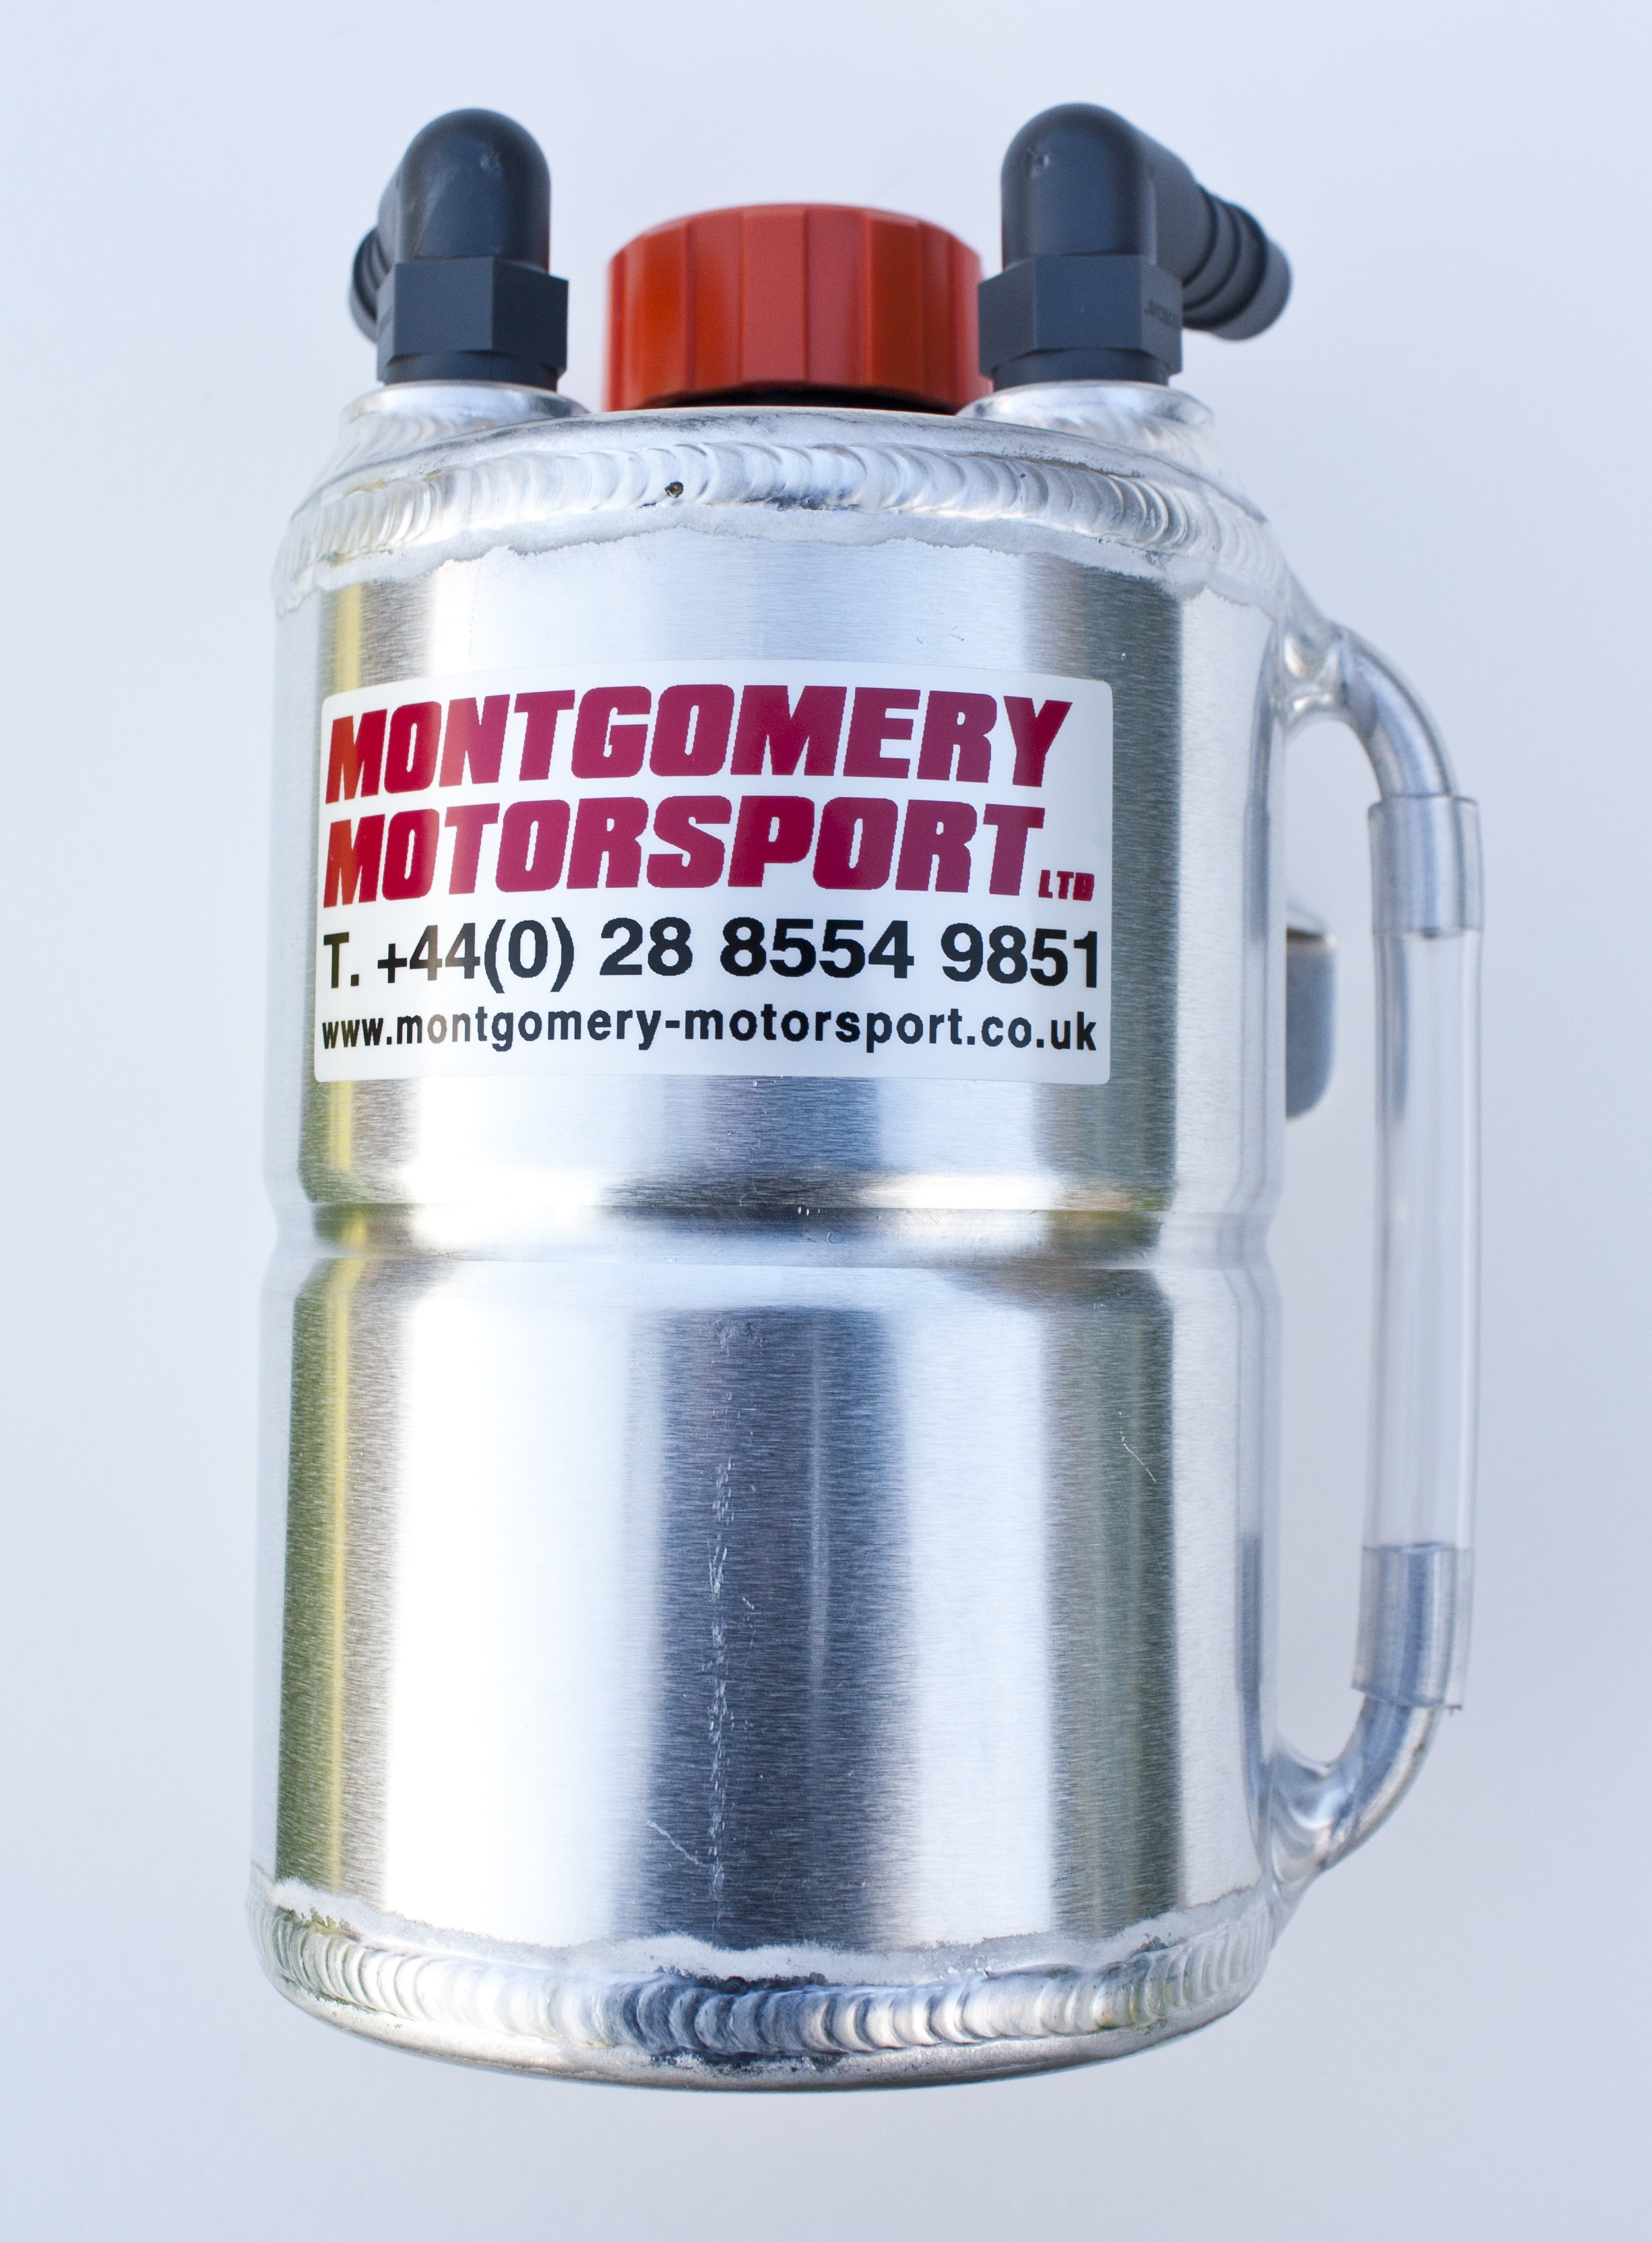 Alloy 1 litre Round Catch Tank with sight gauge and breather cap